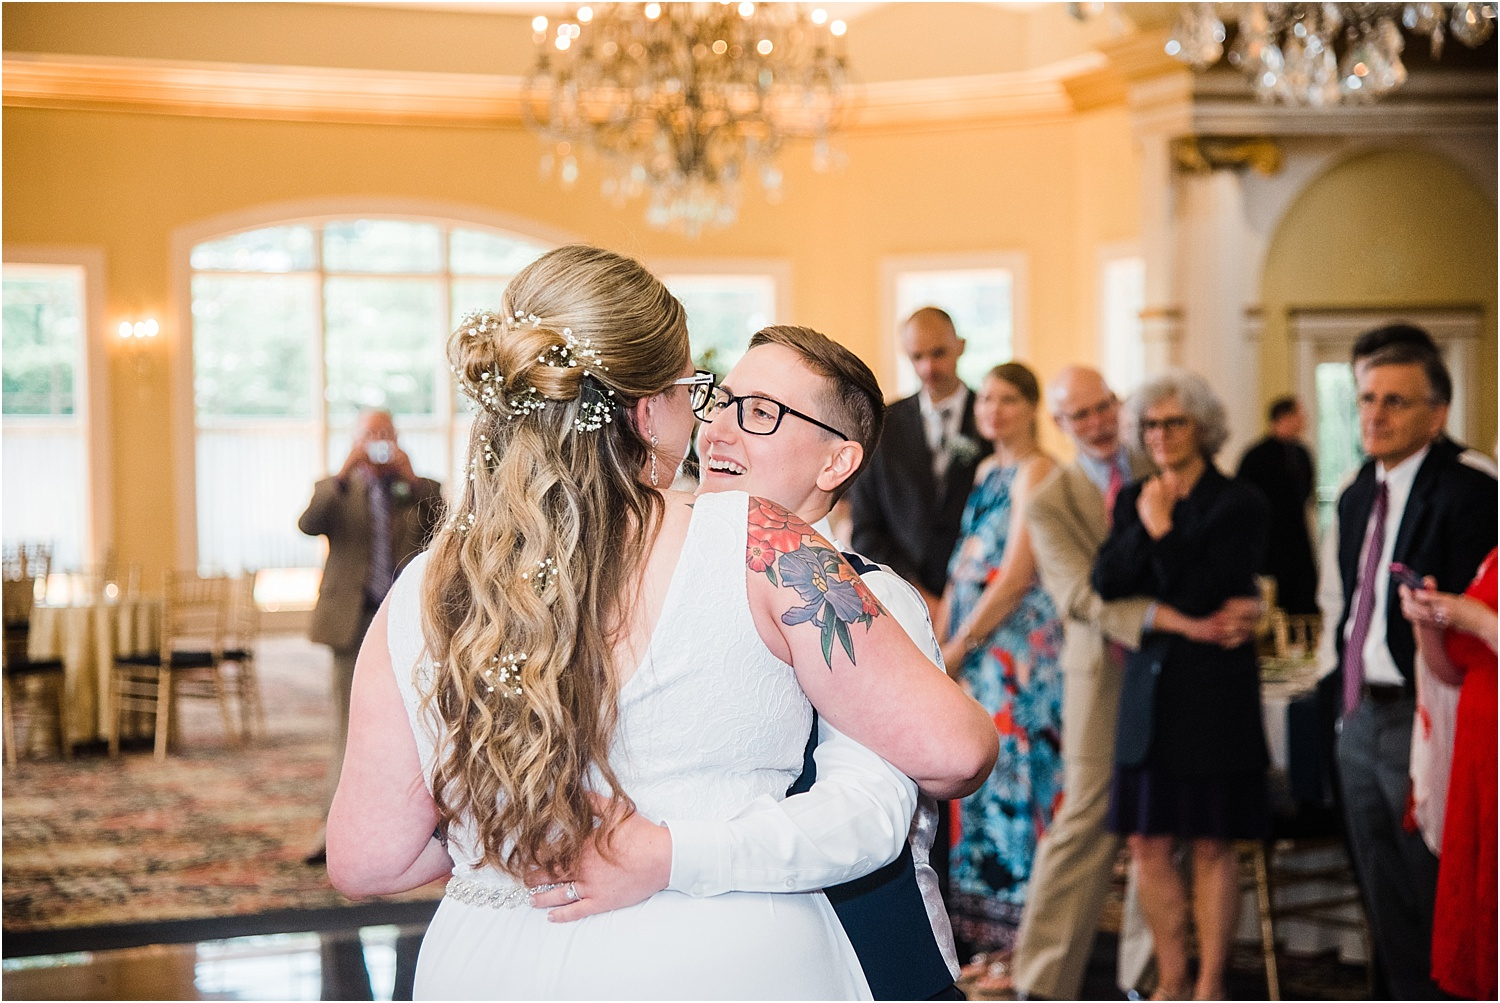 The_Riverview_Simsbury_Connecticut_Wedding_LGBT_Weddings_056.jpg